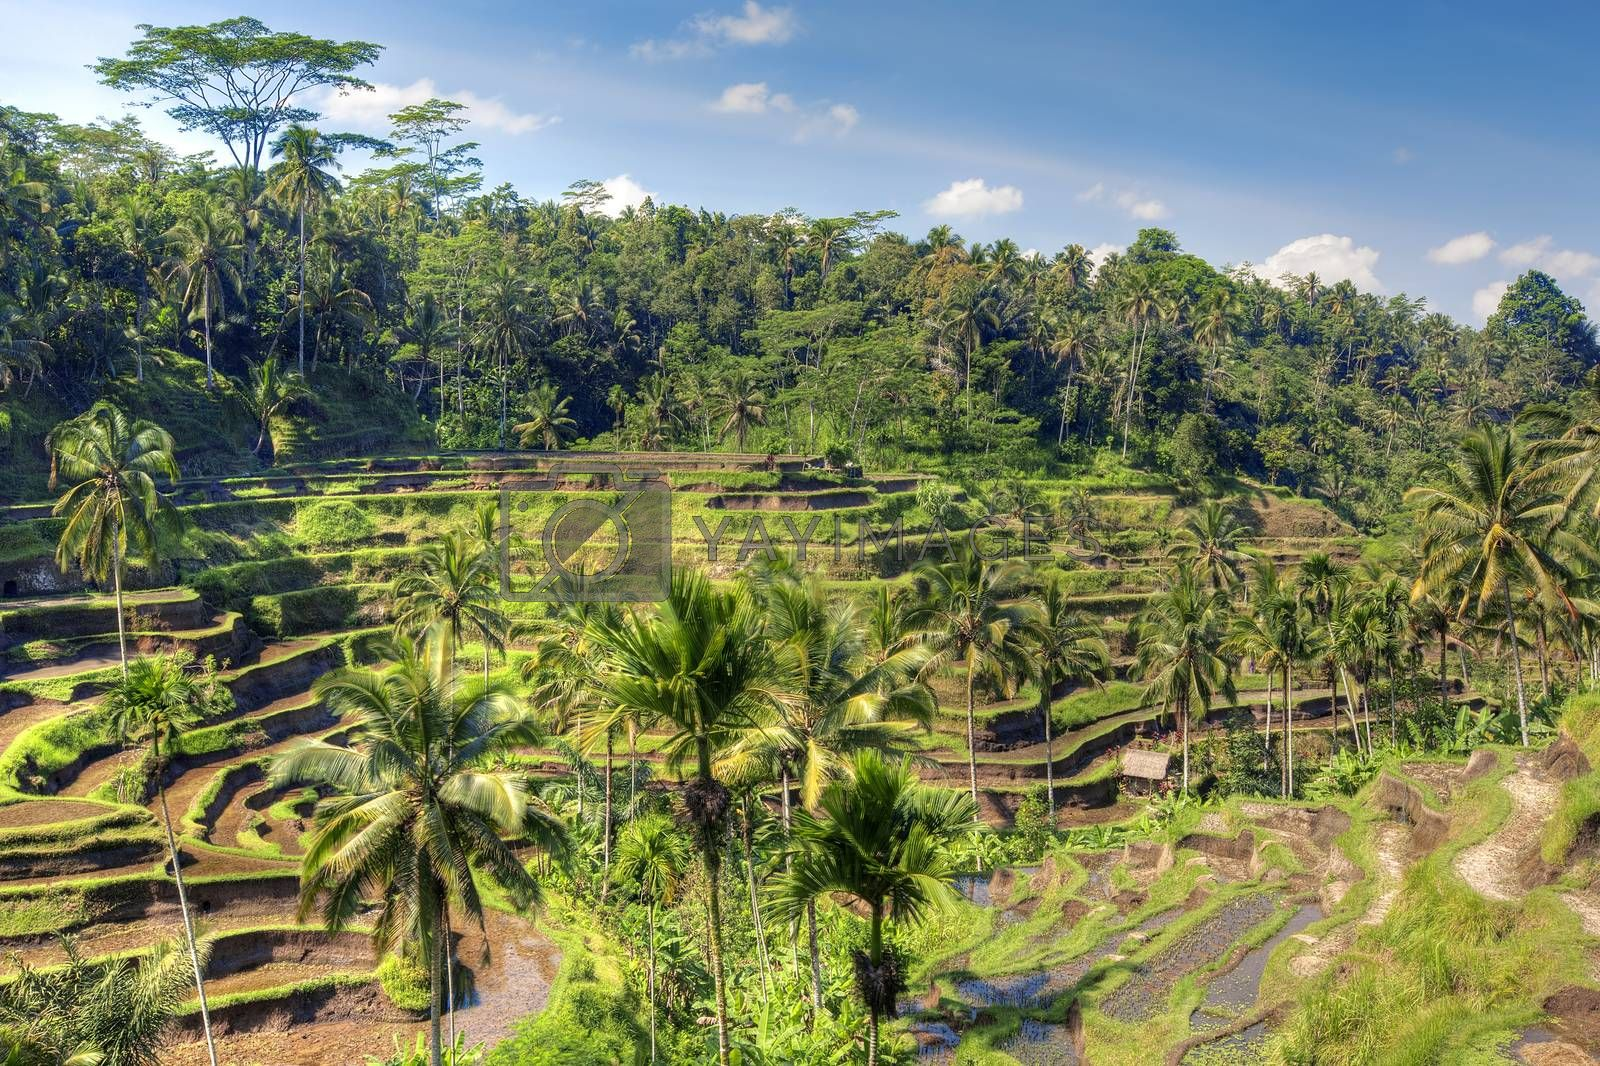 Tegalalang rice terrace fields in Bali Indonesia